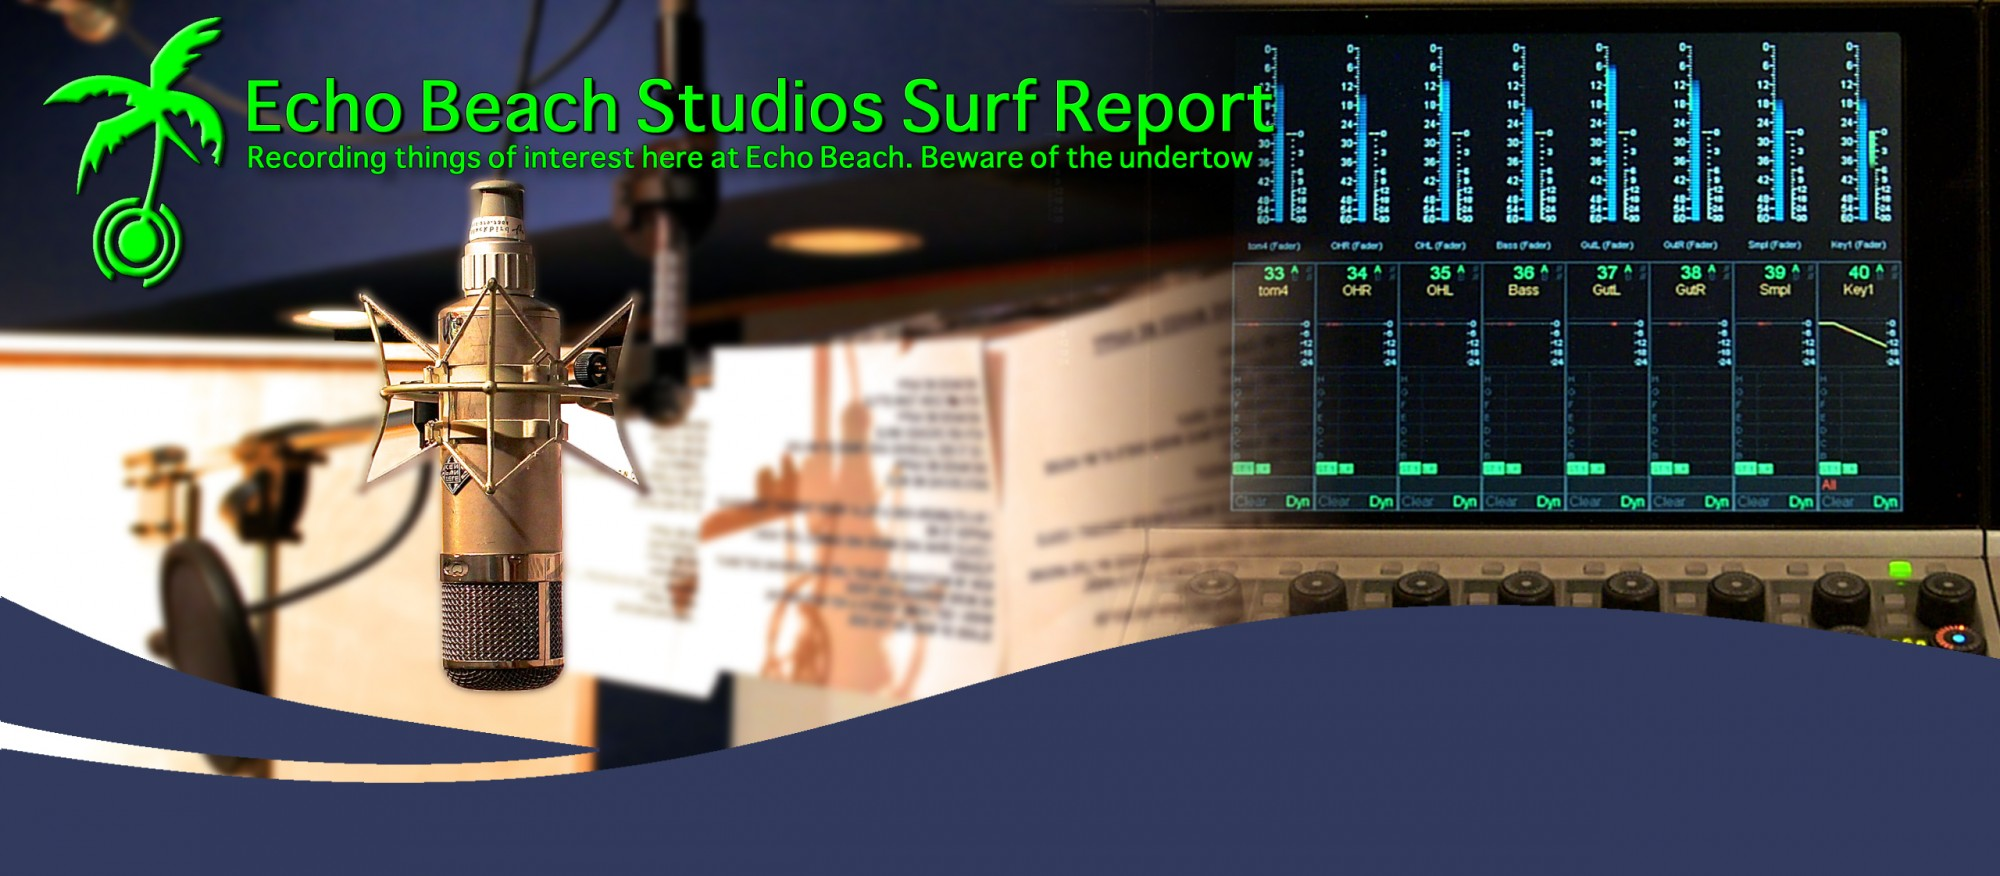 The Echo Beach Studios Surf Report